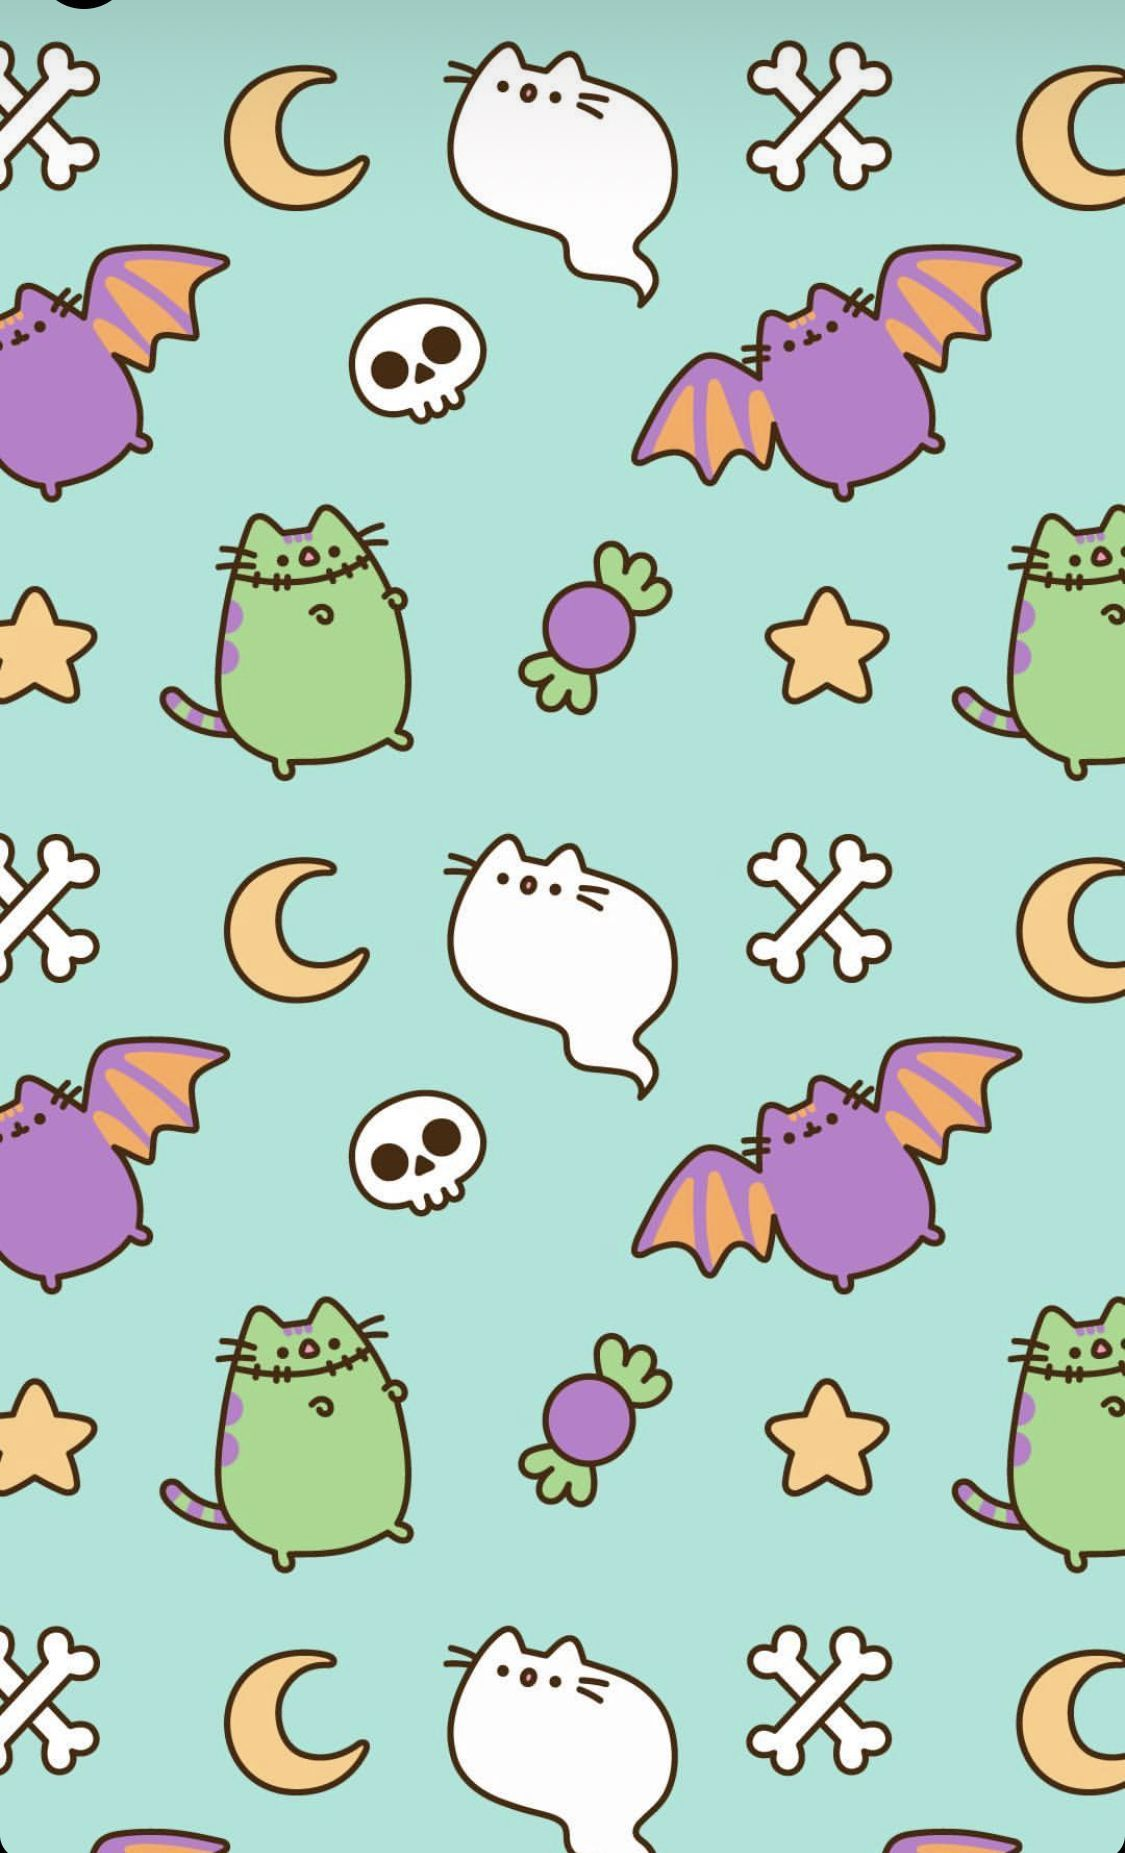 1125x1853 Pin by Kelly Neal on Wallpapers in 2019 | Pusheen, Halloween ...